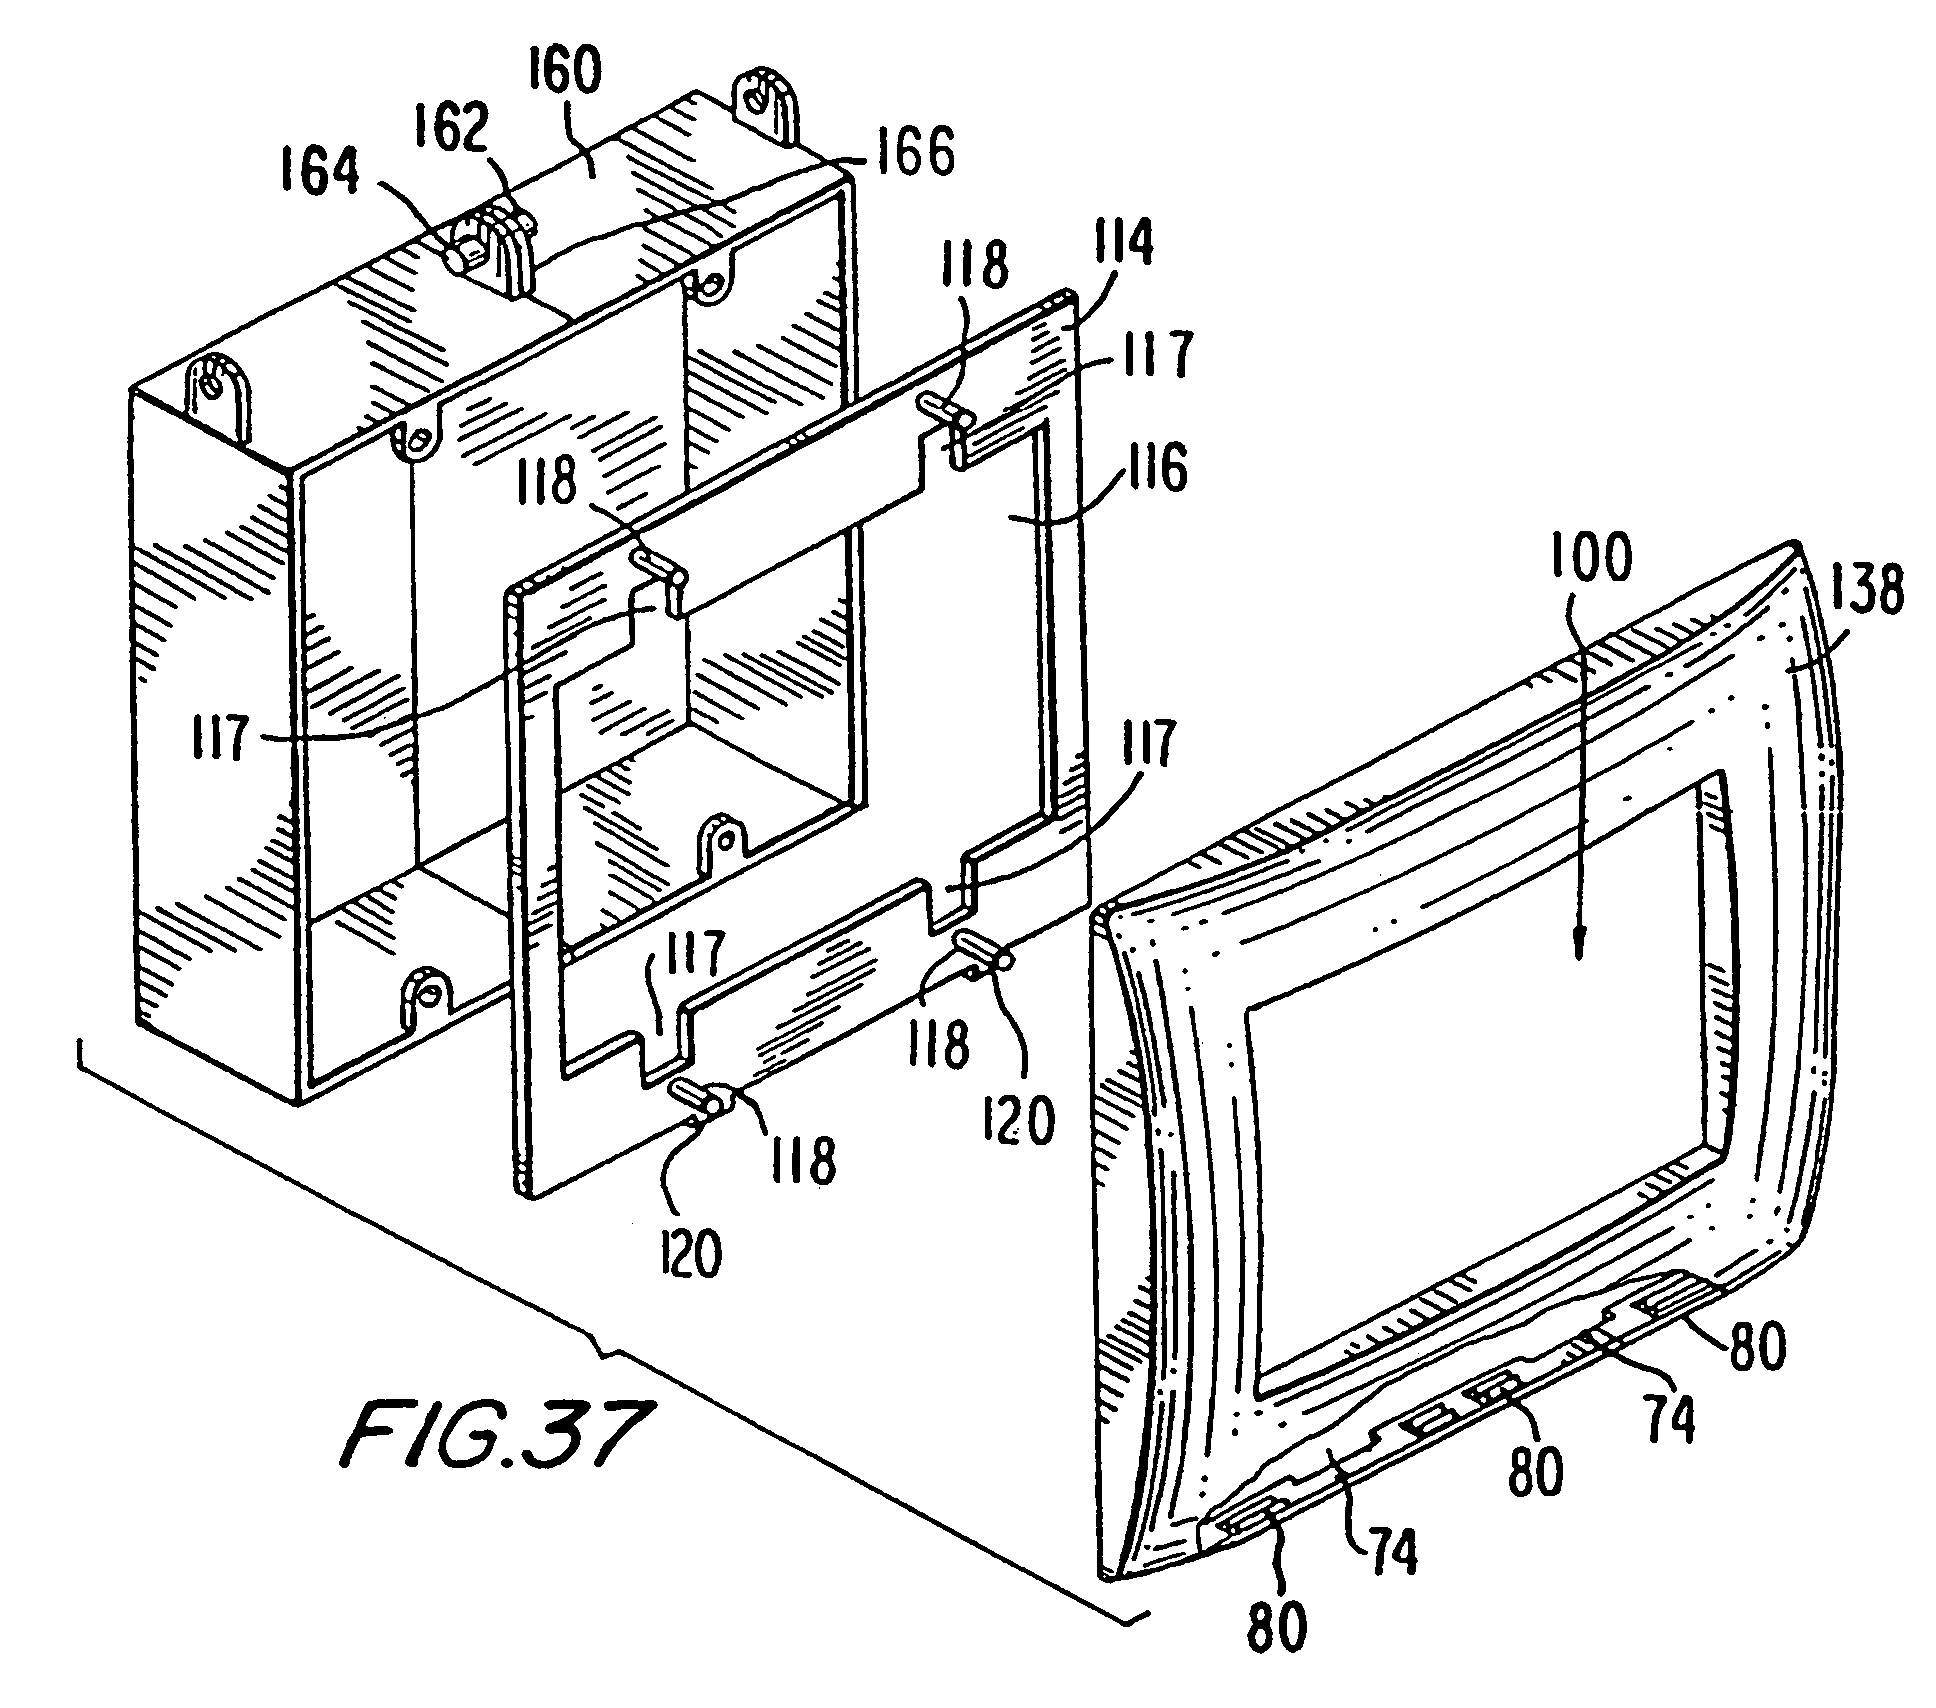 patente us7456360 - electrical receptacle assembly having a clip